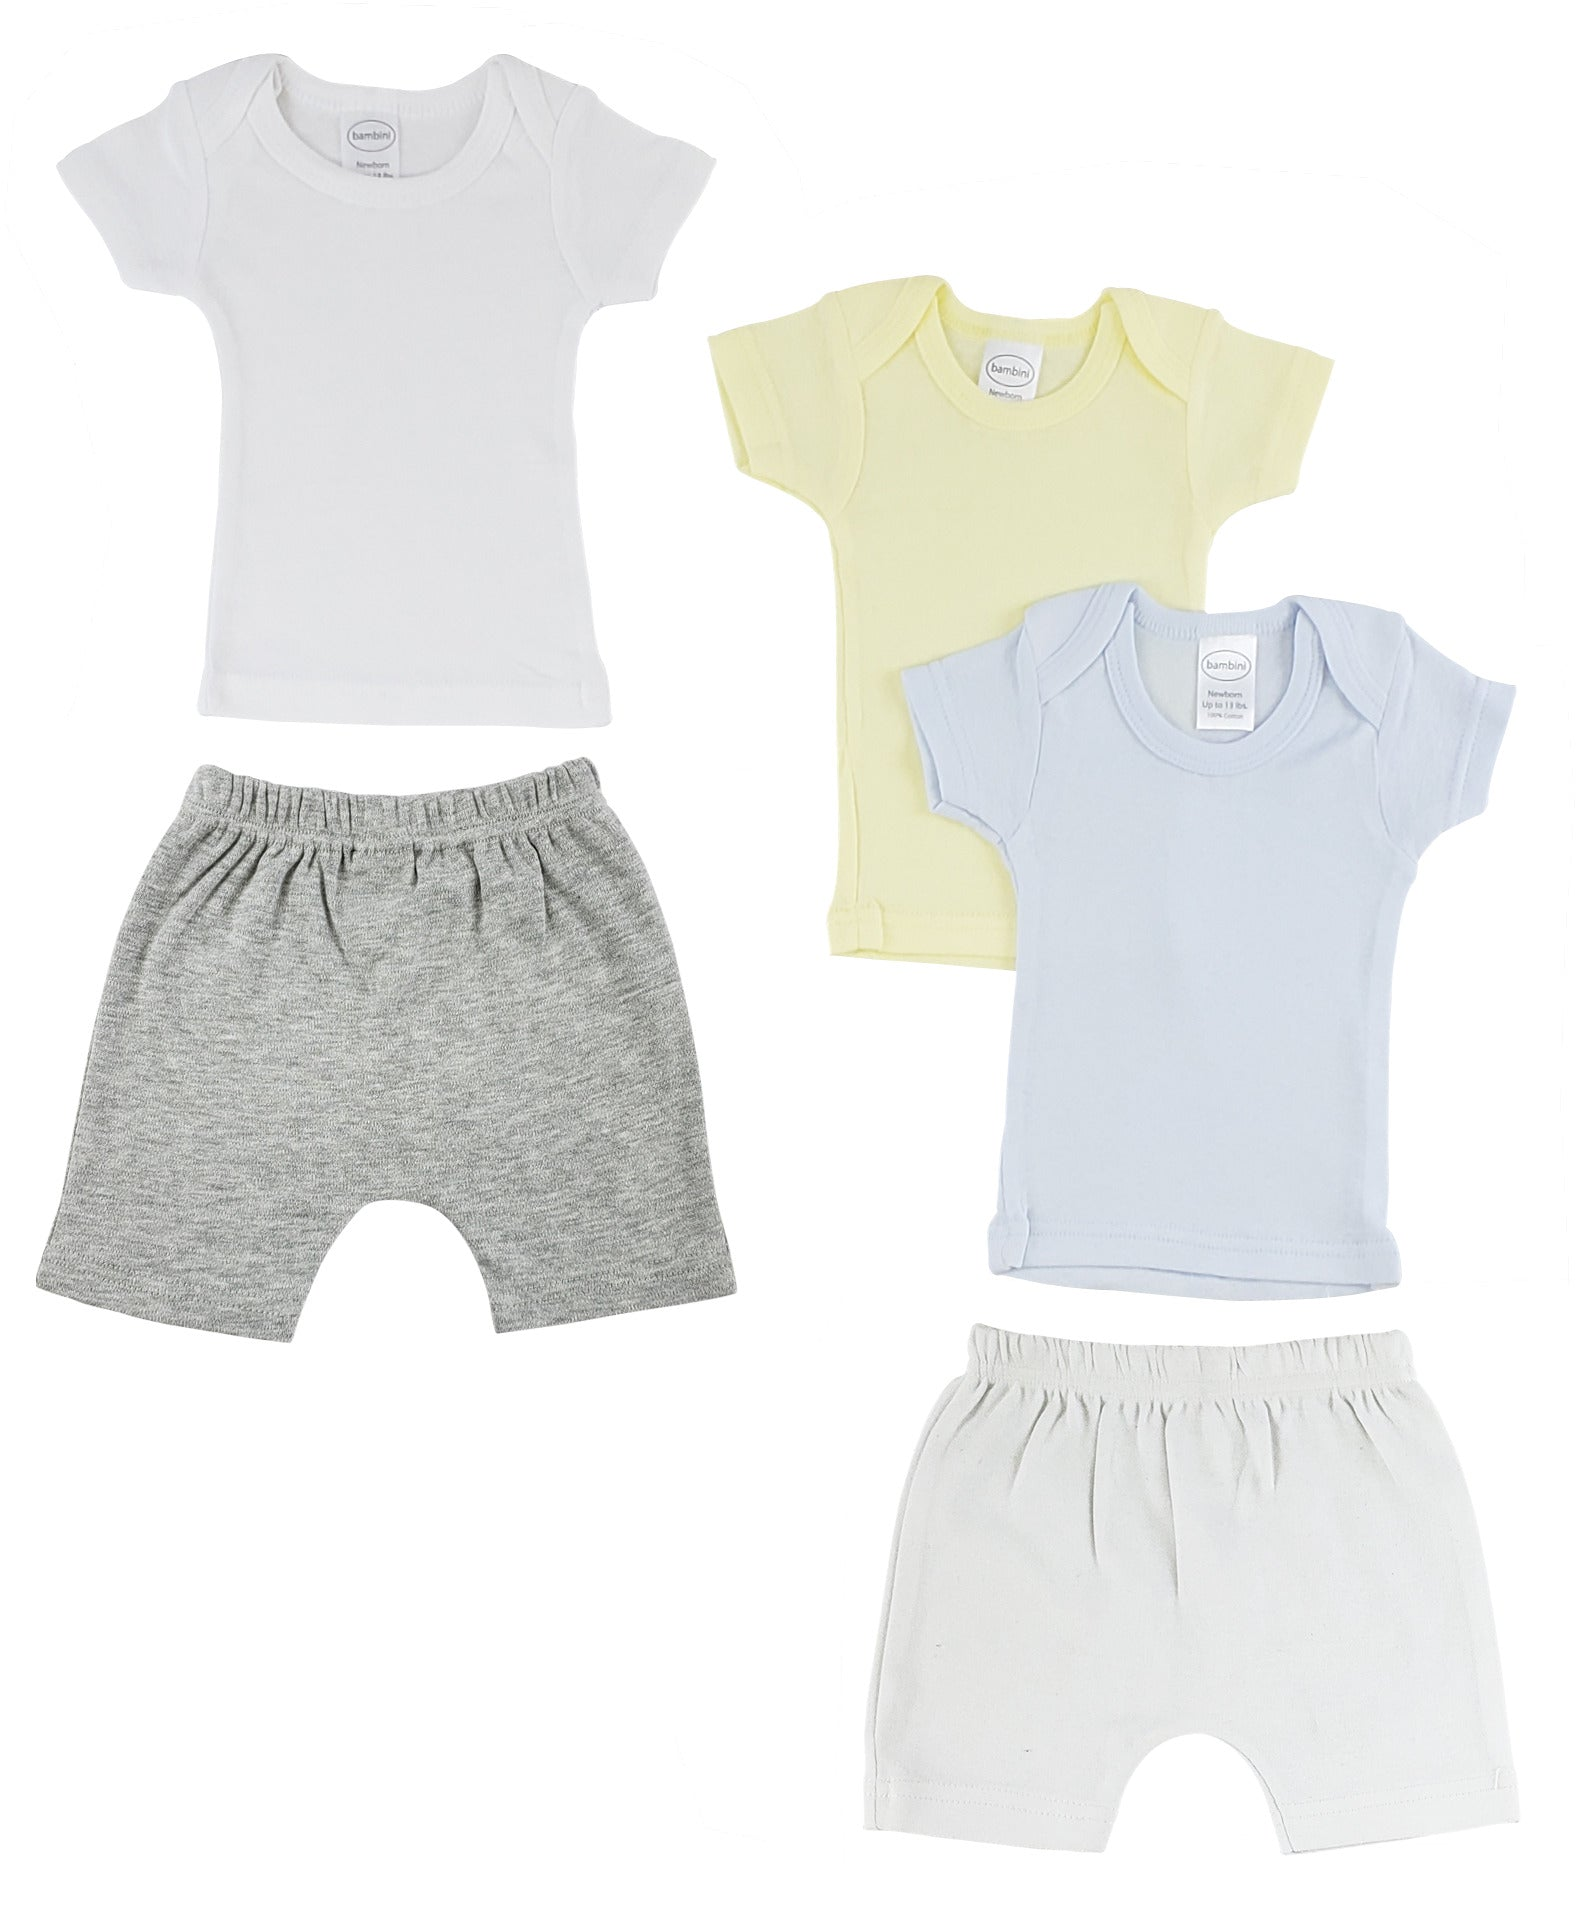 Infant Boys T-Shirts and Pants